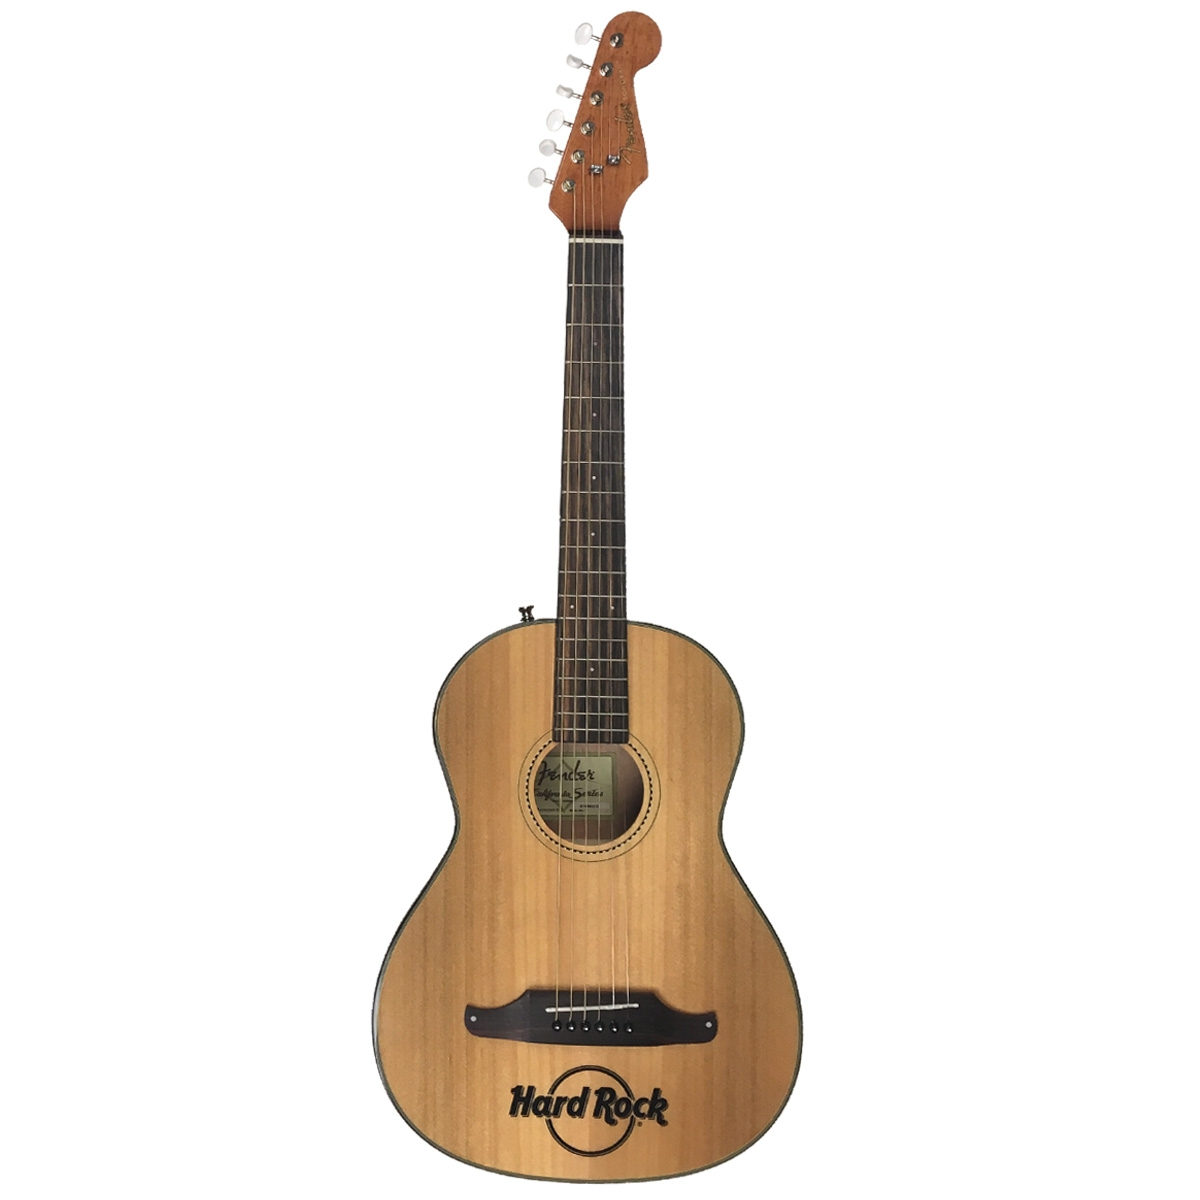 Rock shop fender sonoran acoustic guitar natural fender sonoran acoustic guitar natural 0 malvernweather